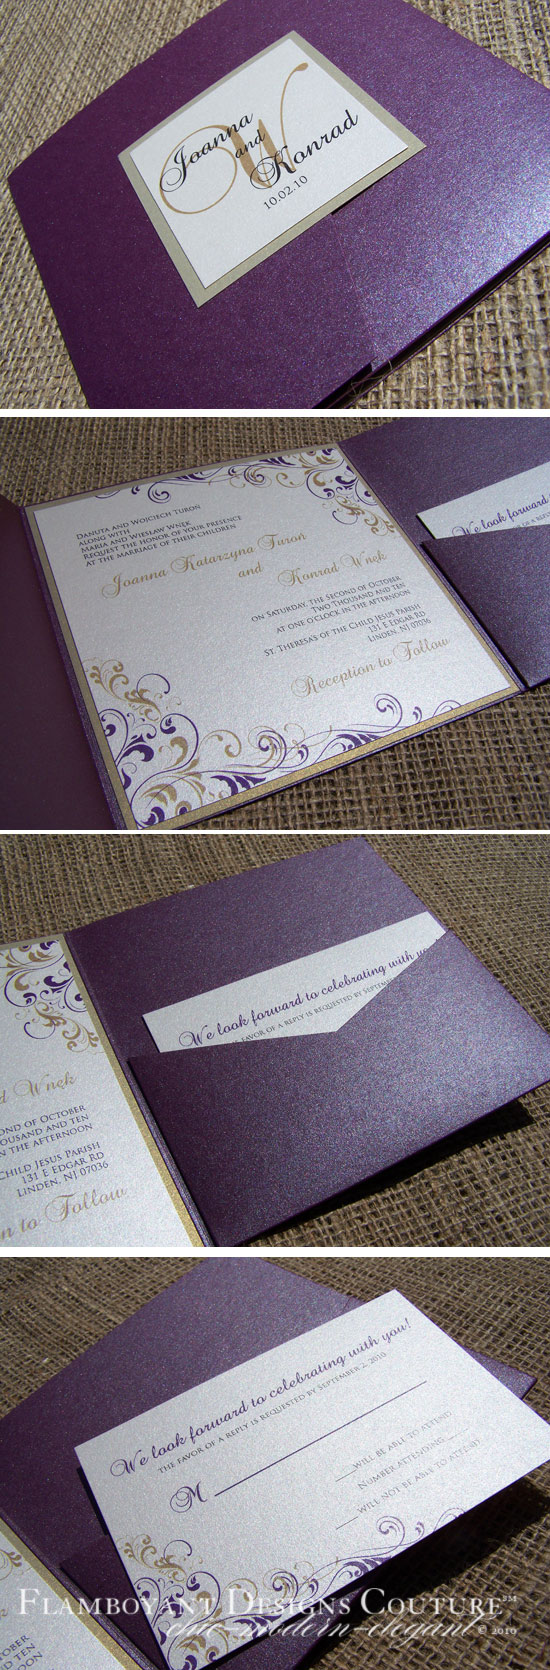 Plum and Gold Pocket Fold Invitations